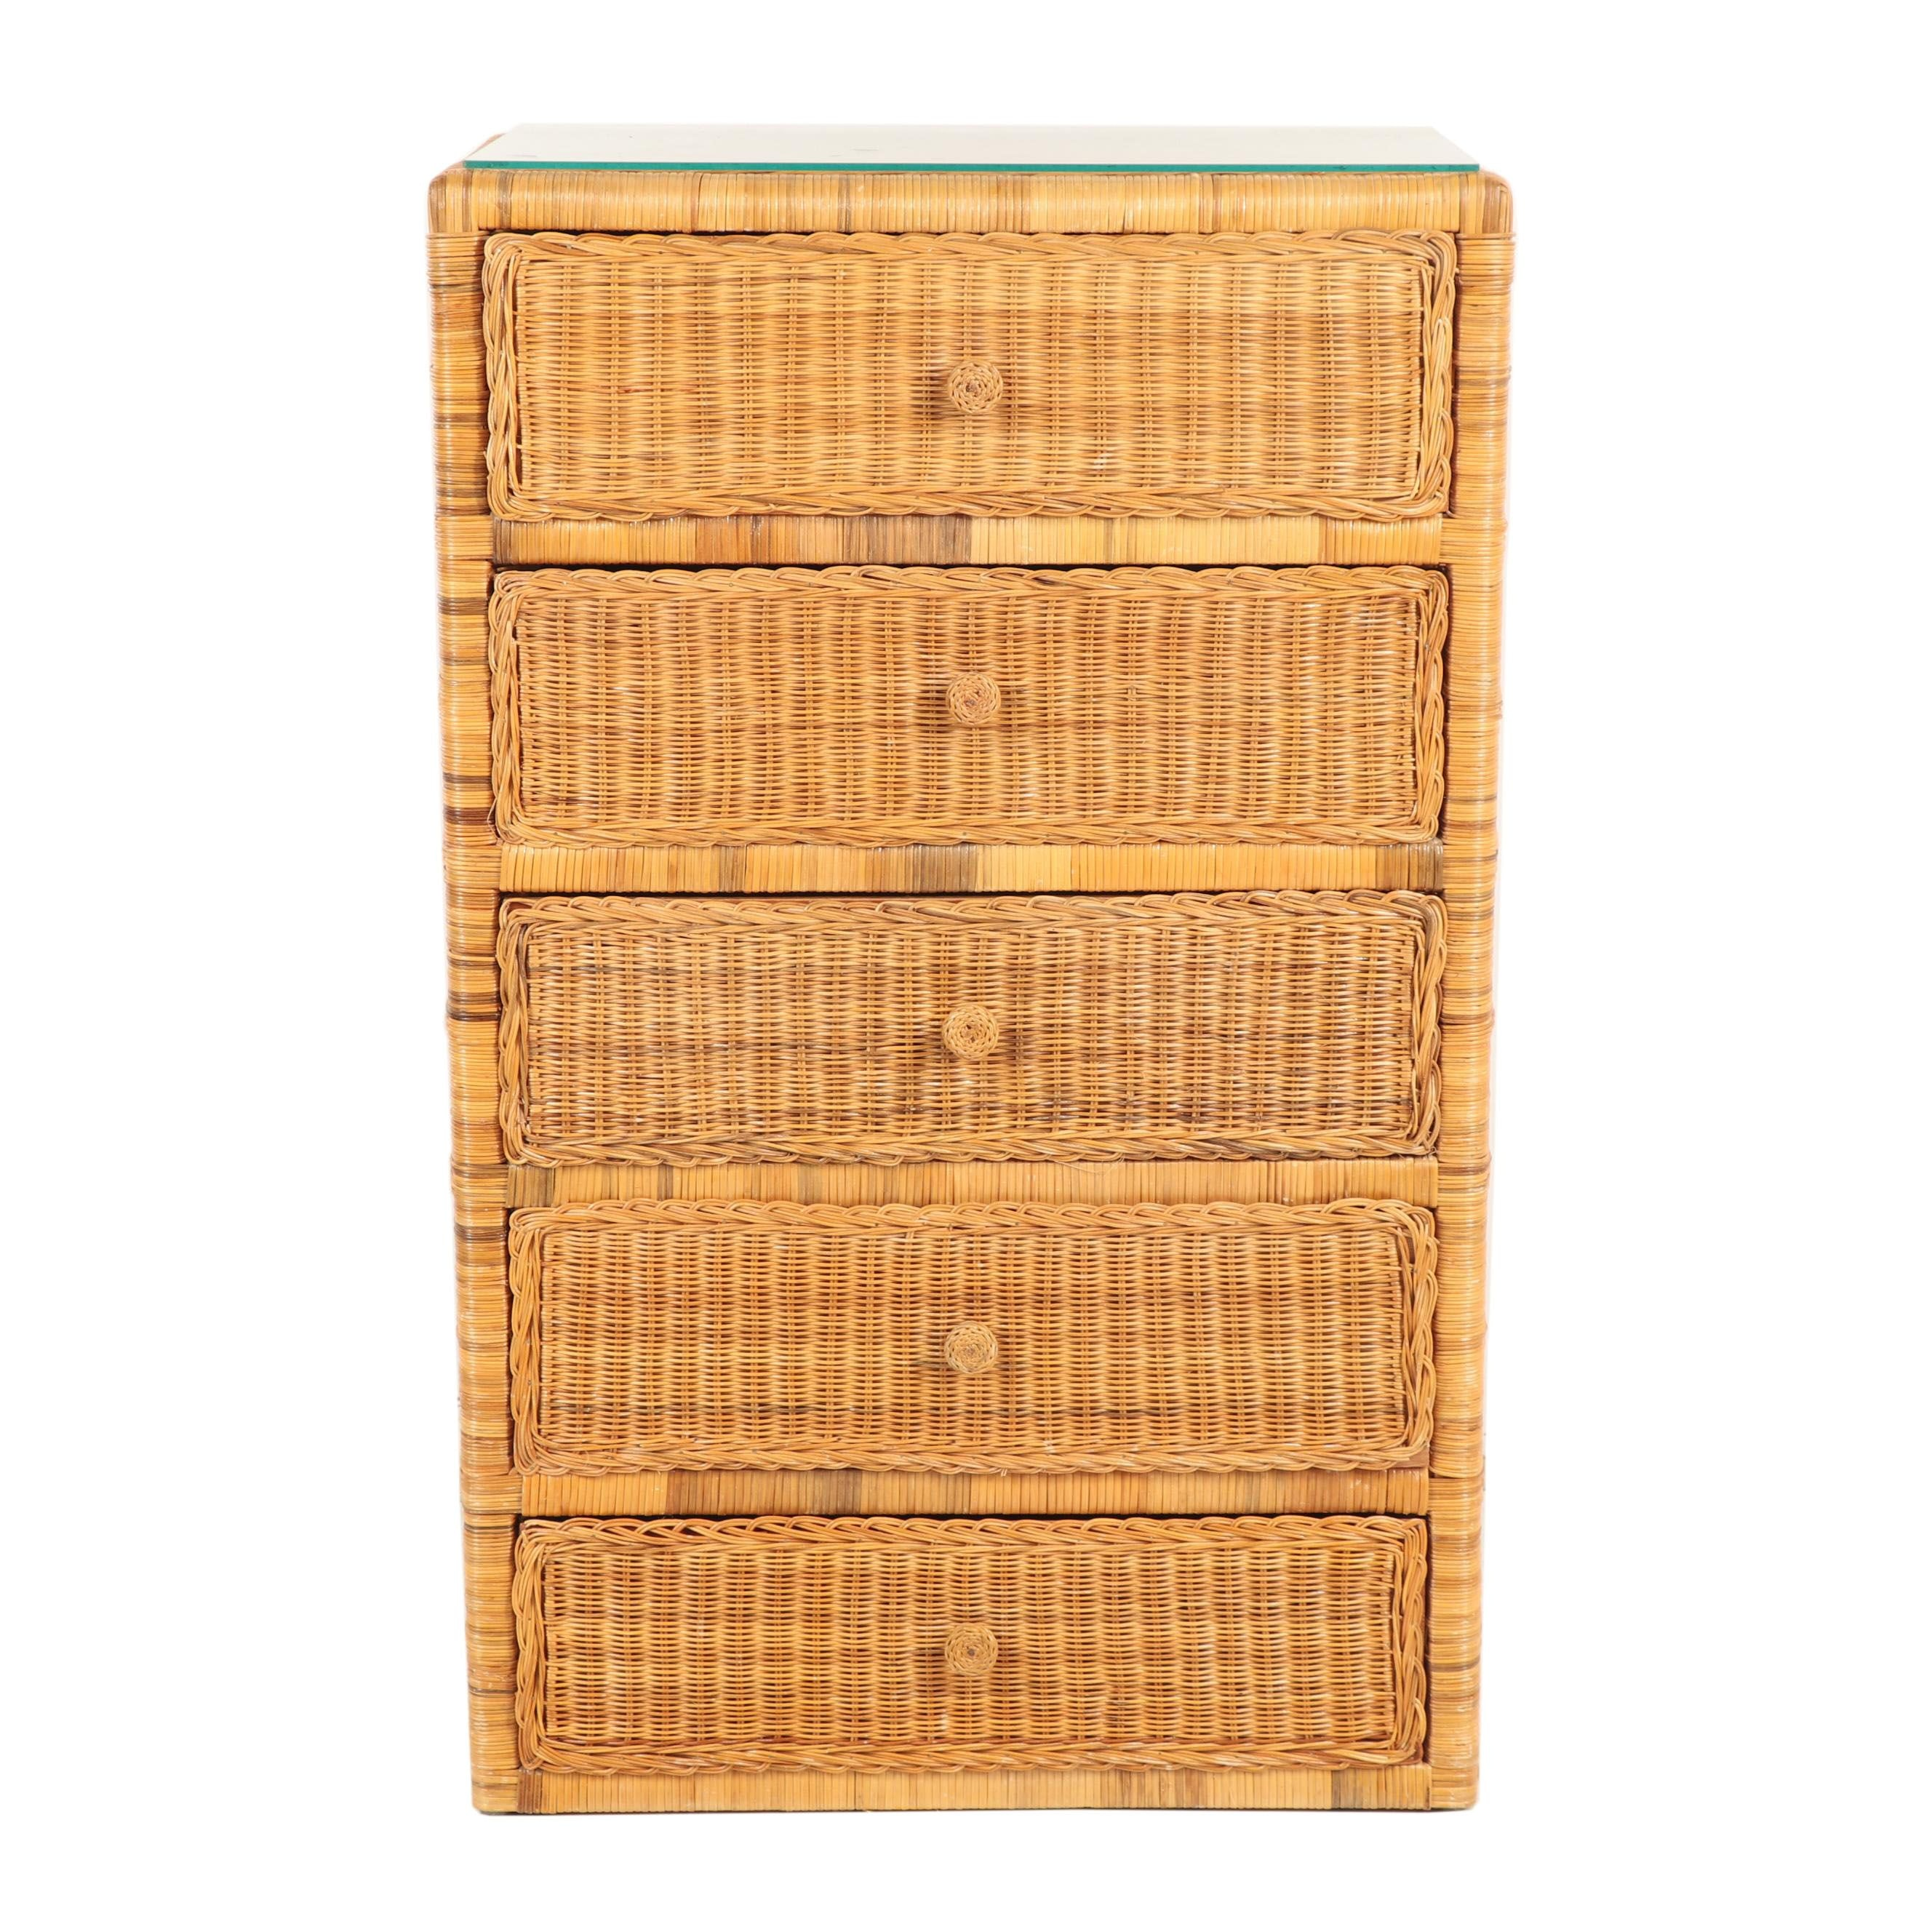 Contemporary Wicker Chest of Drawers with Glass Top